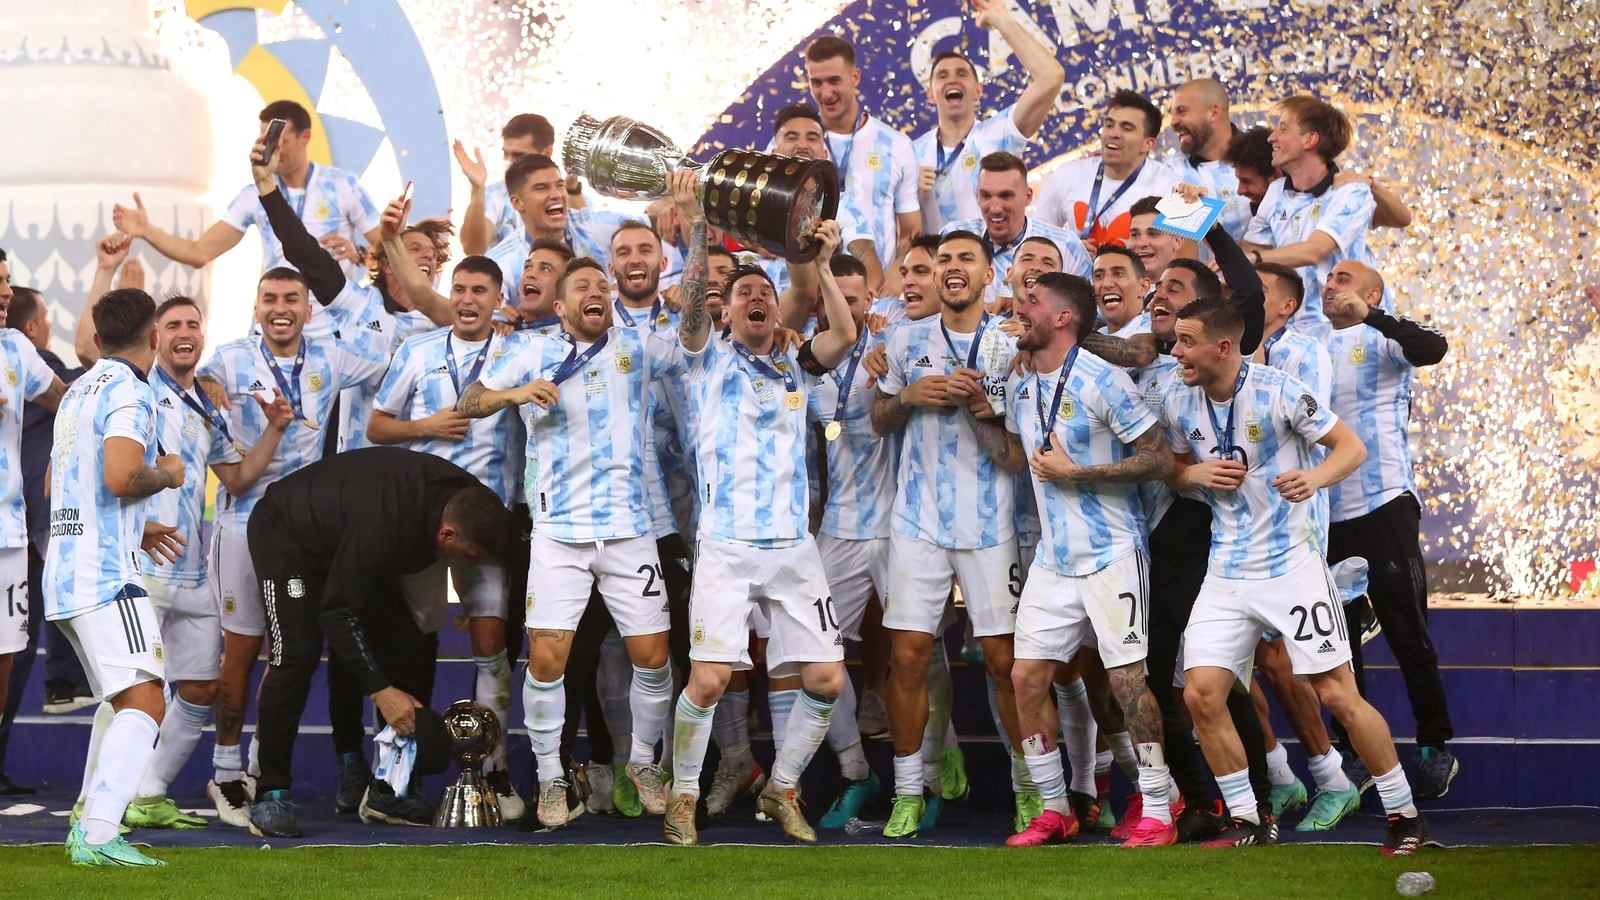 Copa America Final Argentina beat Brazil 1-0: Di Maria goal gives Messi & Argentina first Copa America title since 1993   Football News - Hindustan Times